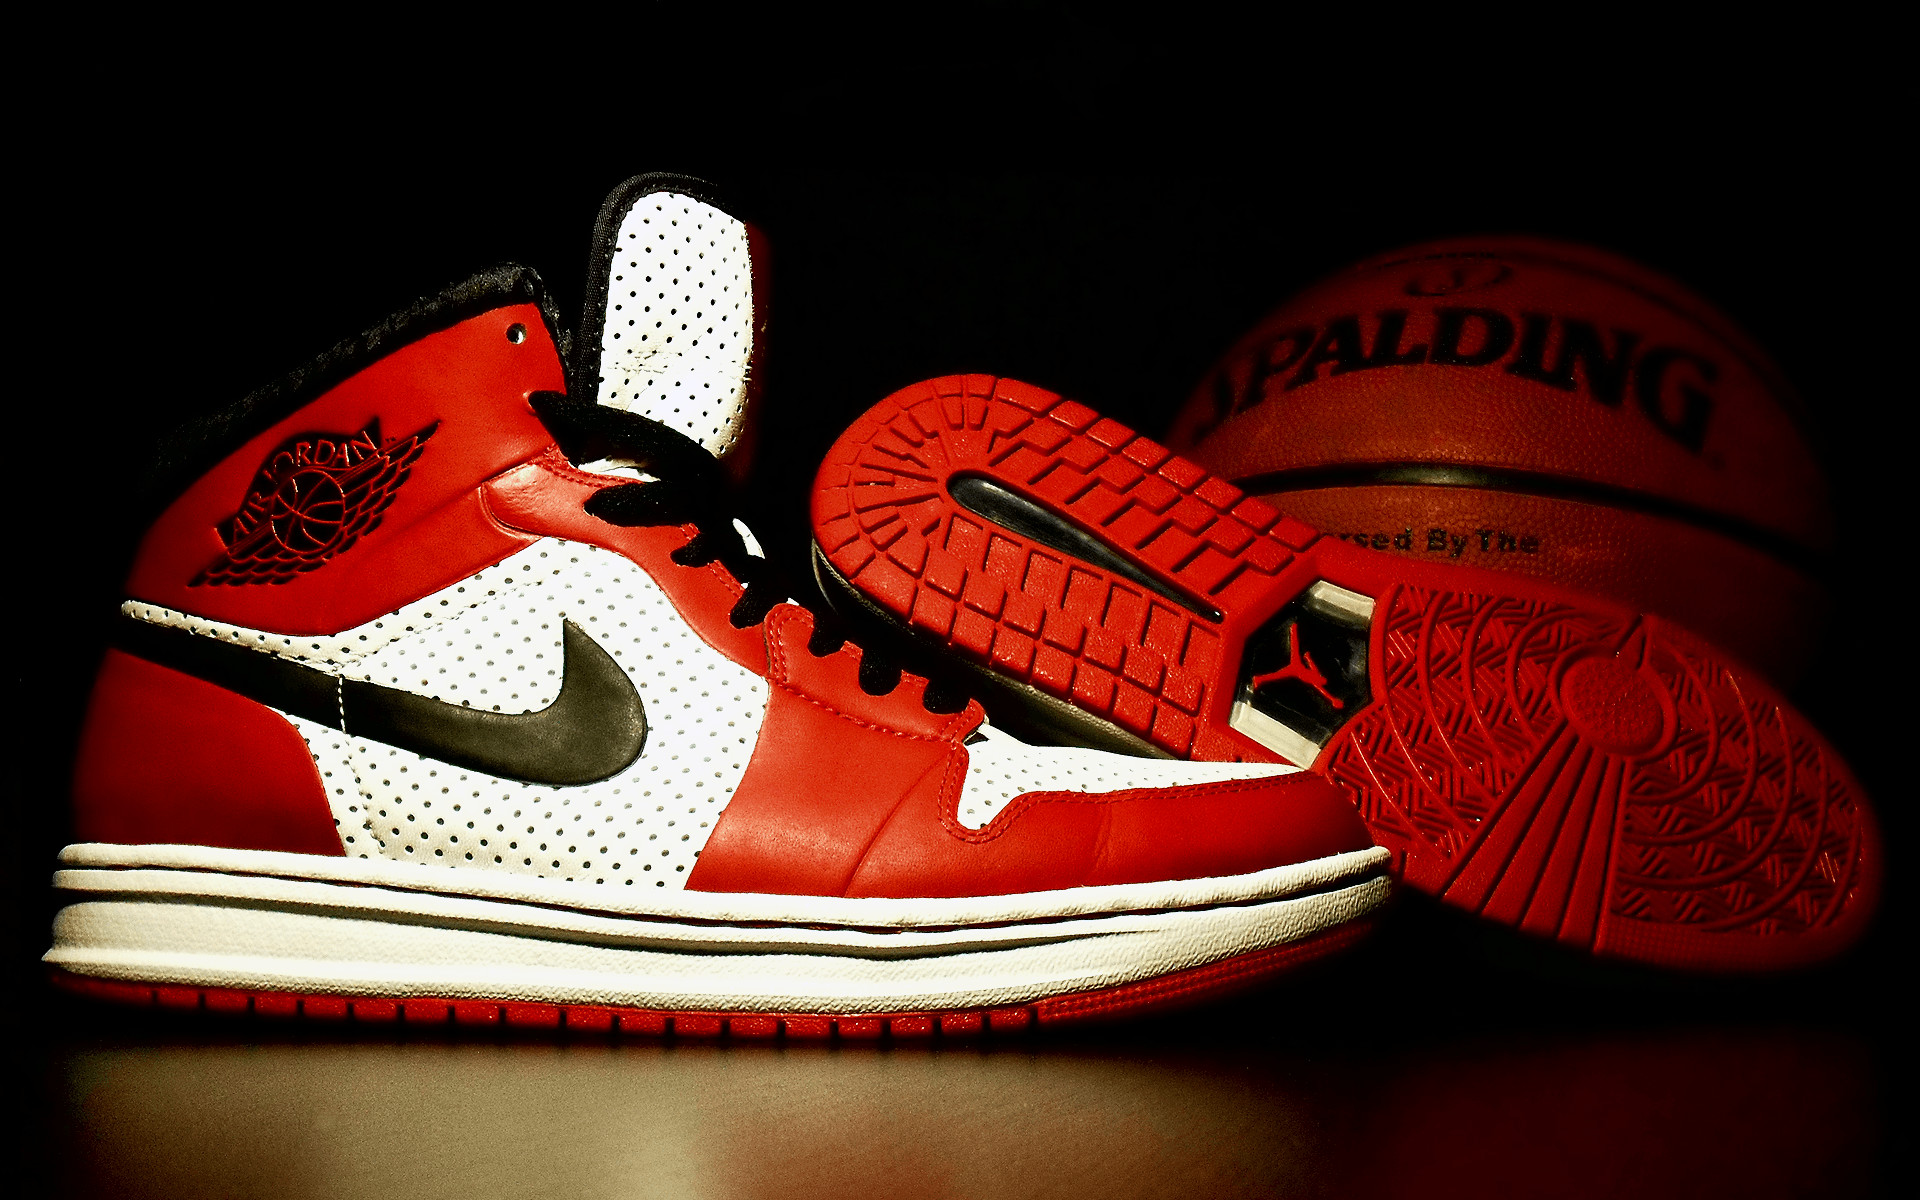 1920x1200 Download Free Air Jordan Shoes Wallpapers | HD Wallpapers .